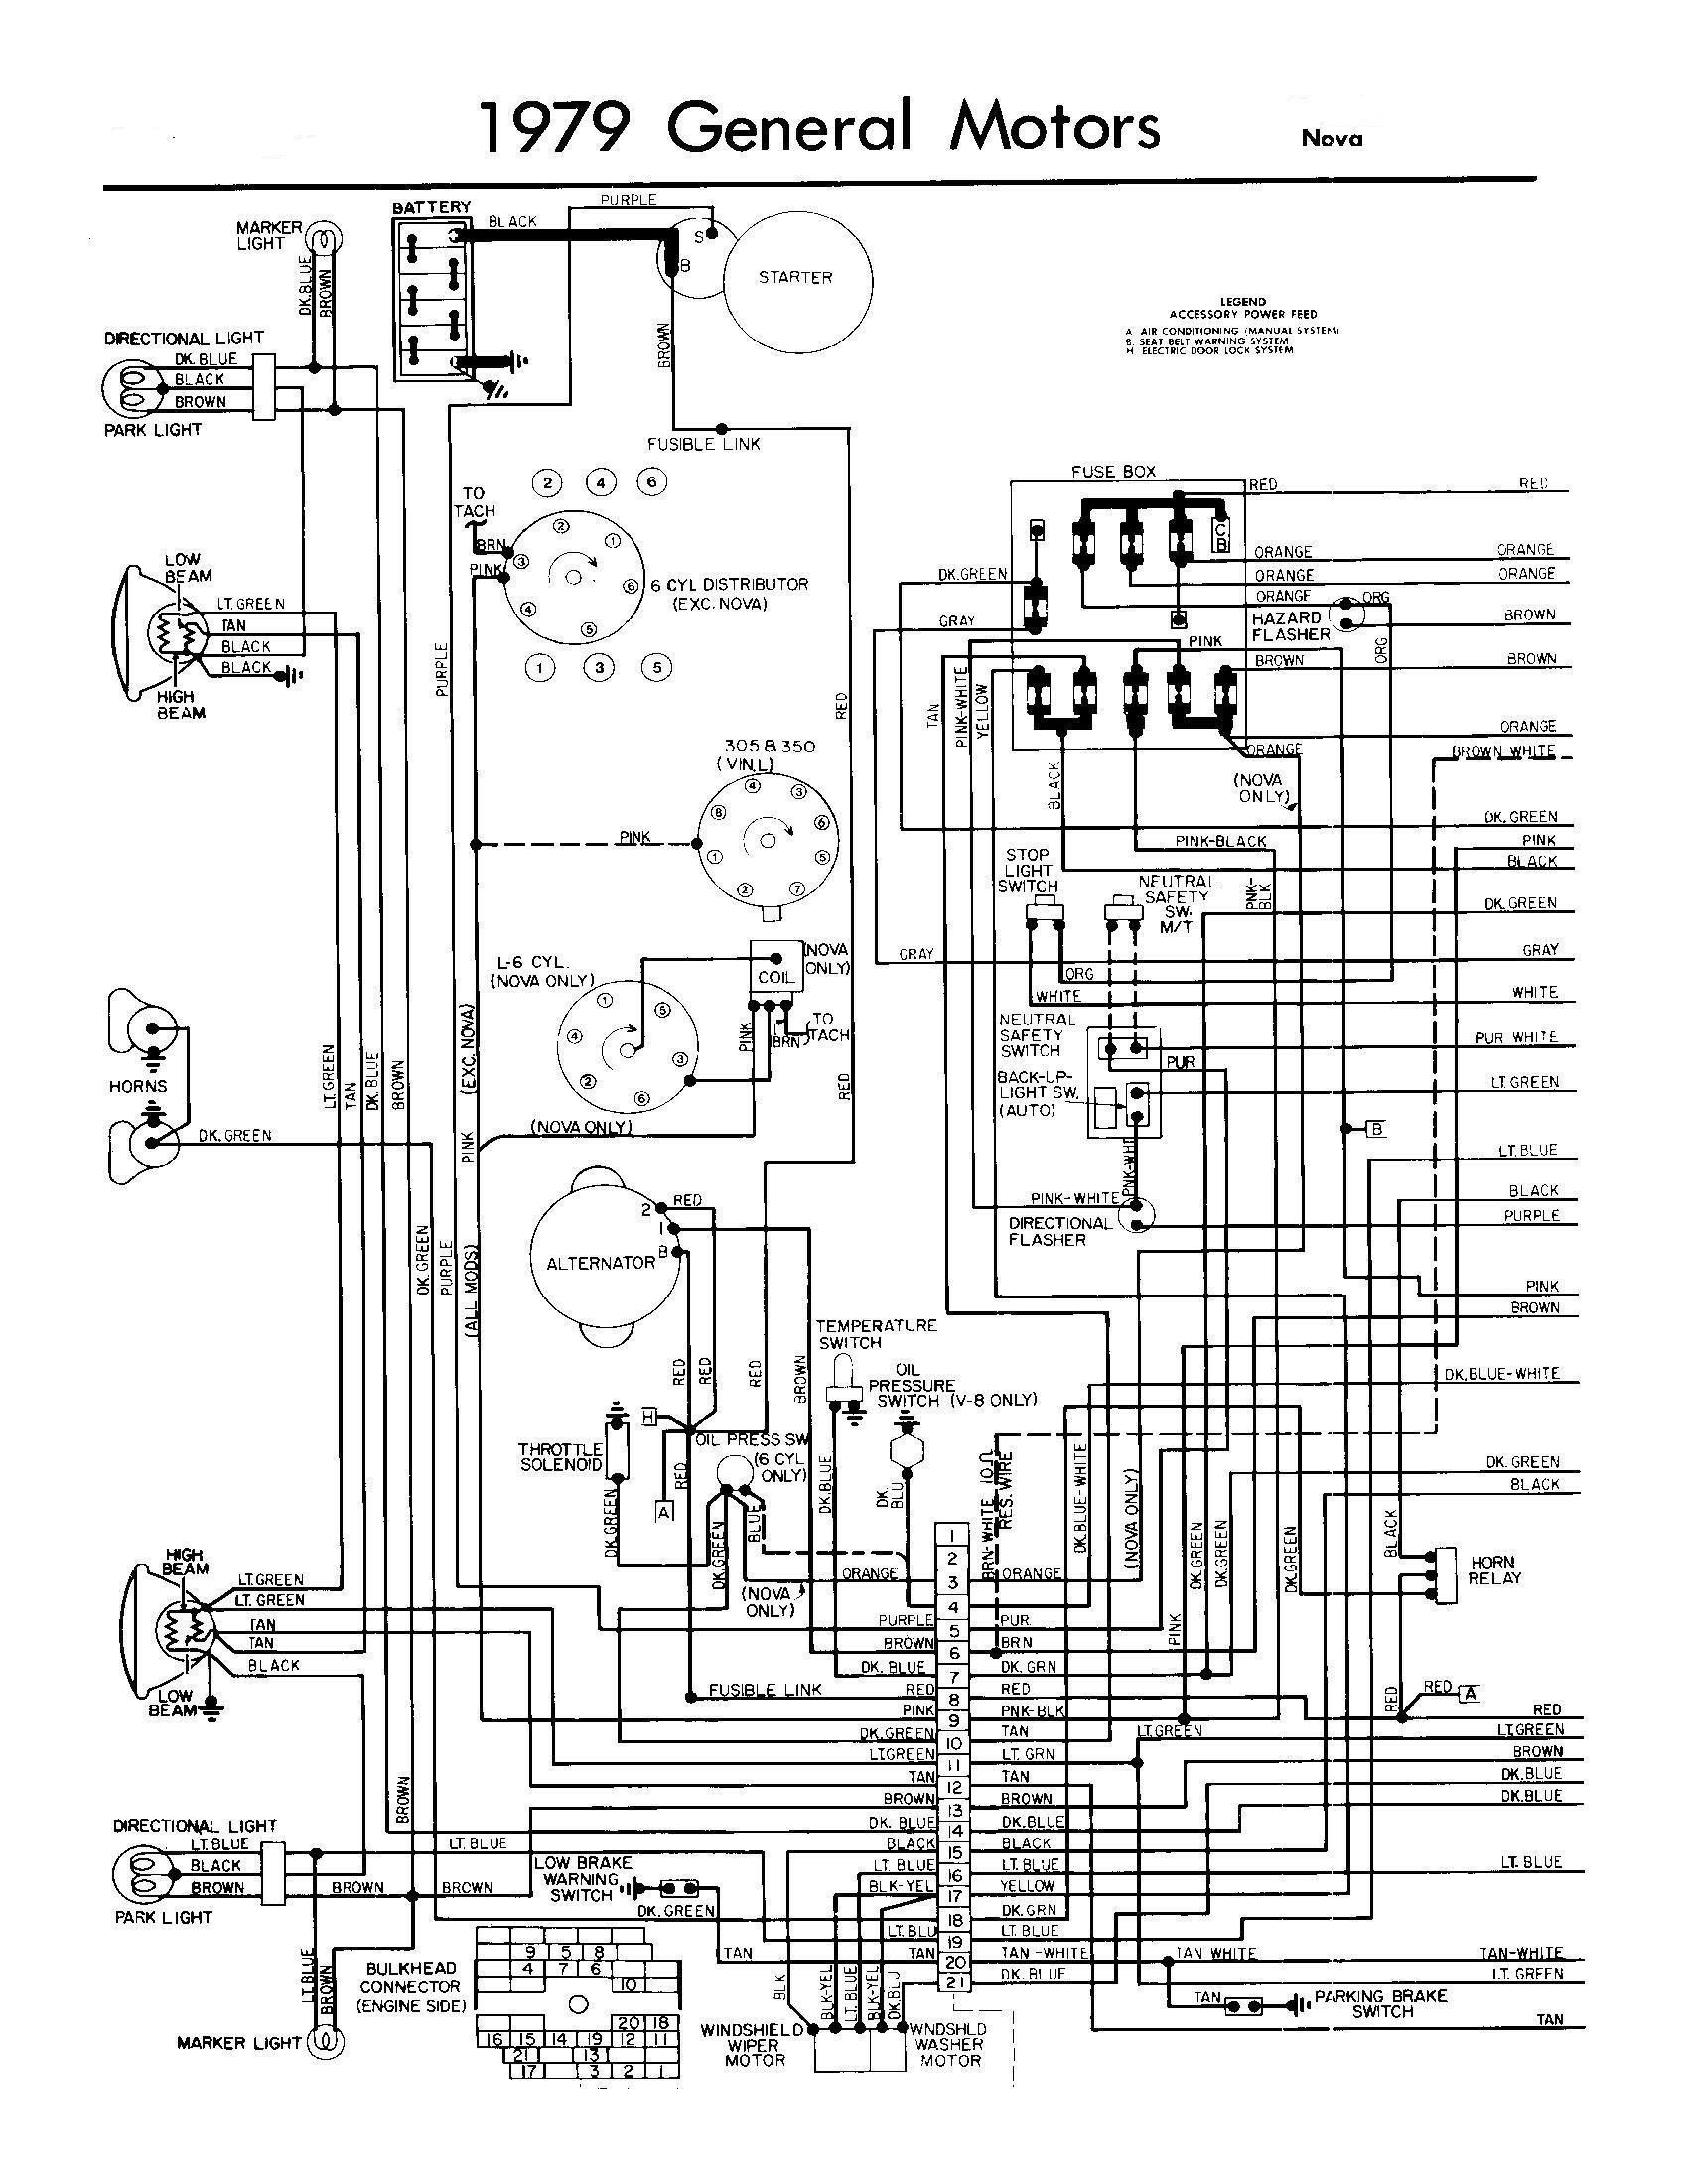 Perfect Ford Alternator Wiring Diagram 85 Ford Bronco Wiring Diagram Wiring  Diagram Rh 02 Ansolsolder Co 1982 Ford… | Chevy trucks, 1979 chevy truck,  79 chevy truckPinterest